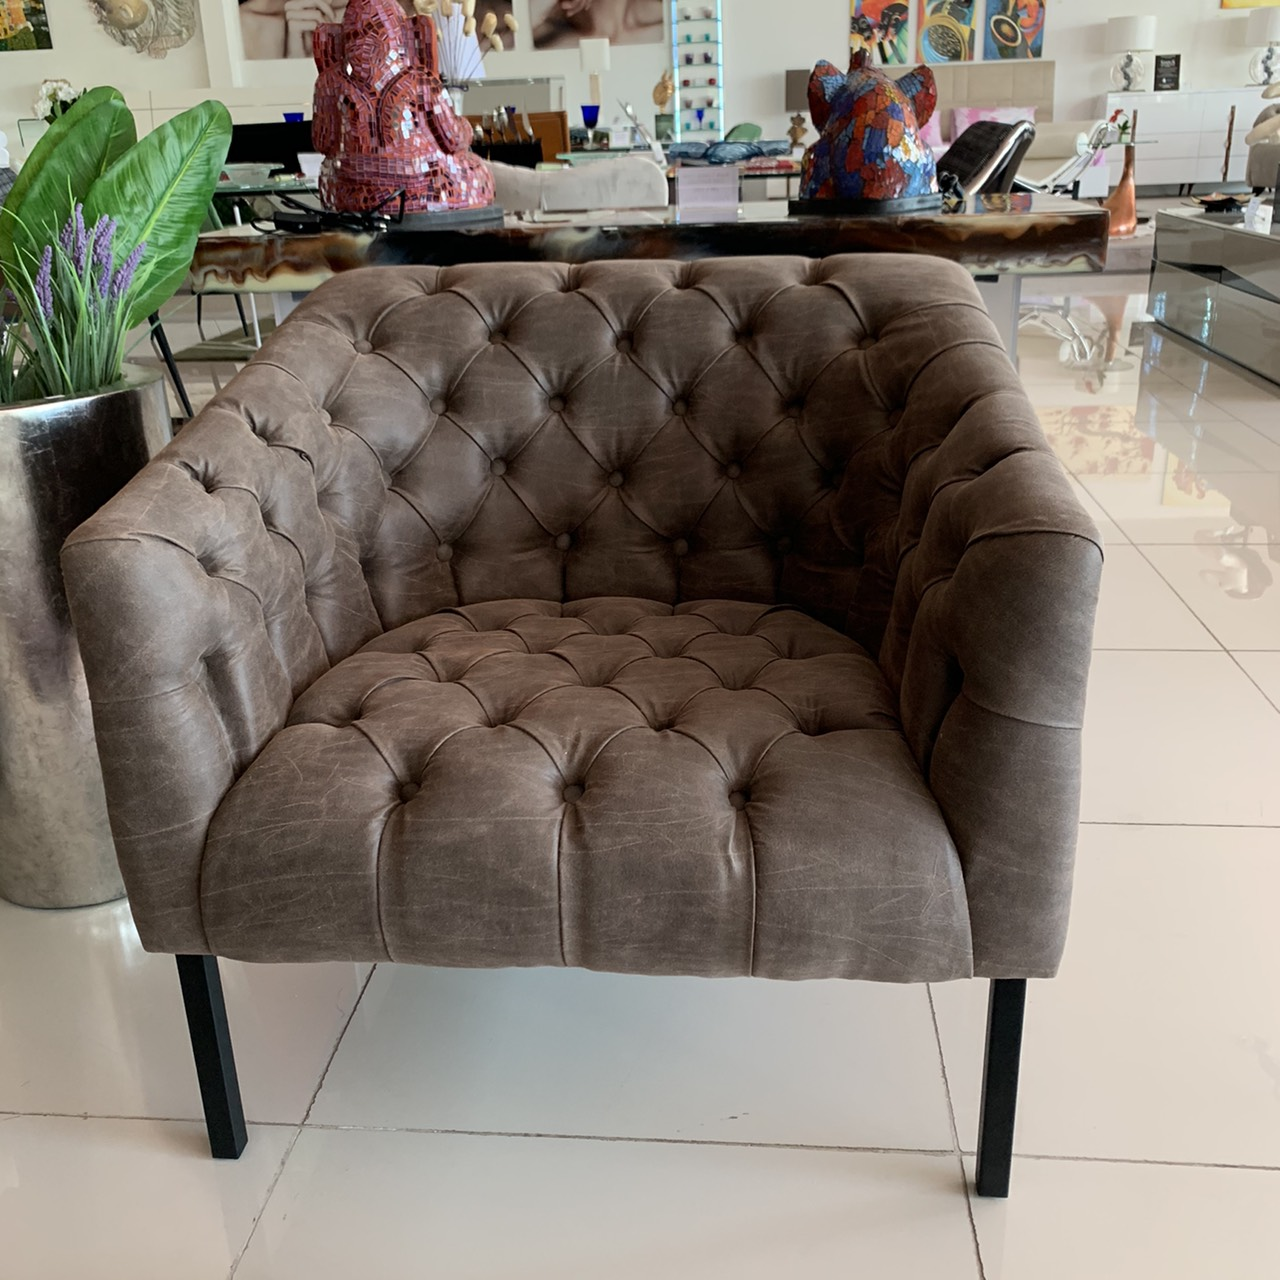 Limited LC chair uph in vintage americano